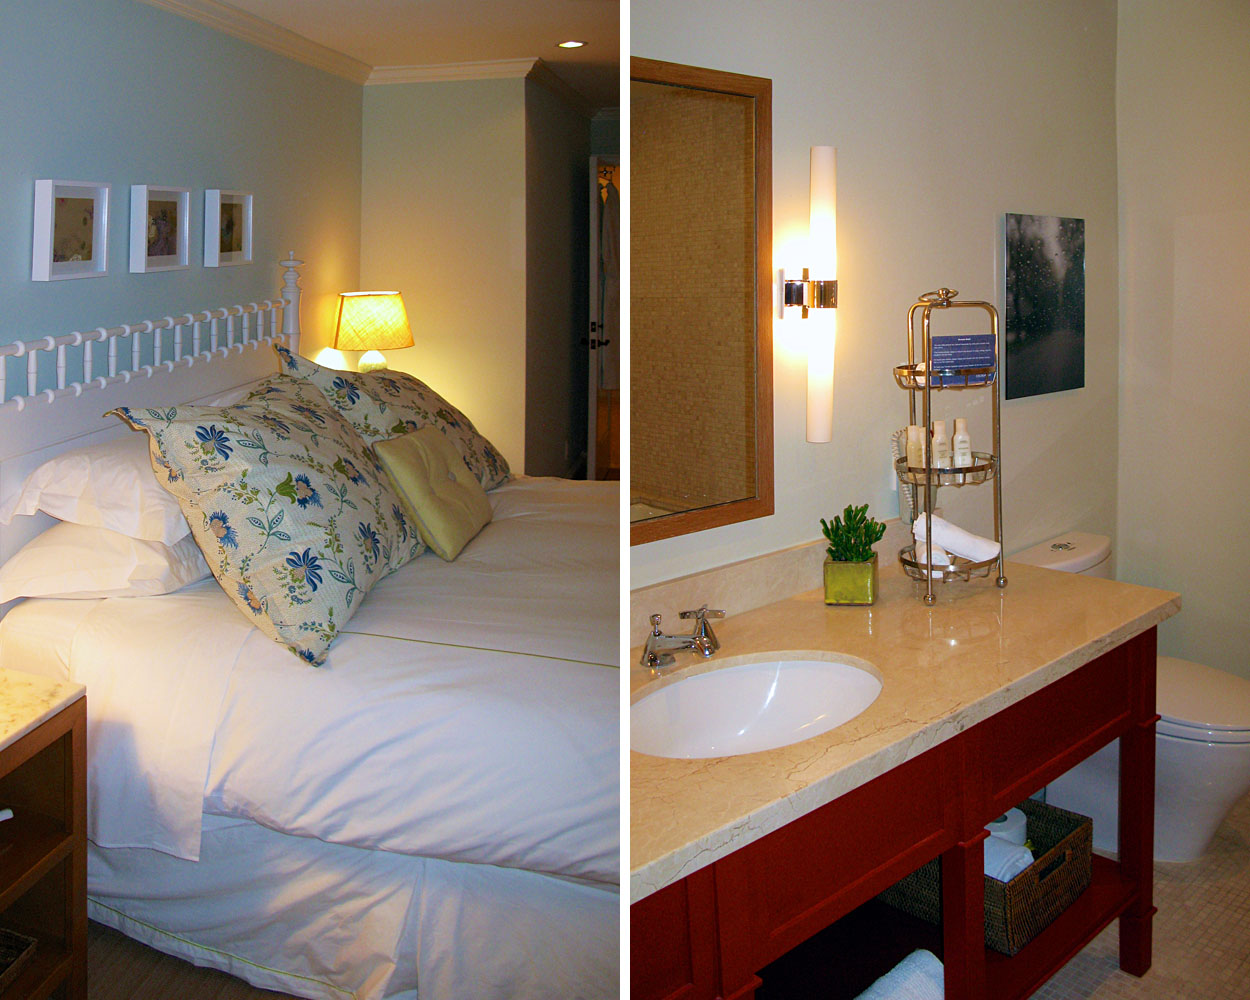 The Current Bedroom and Bathroom at the Stan's Apartment in the Oceana